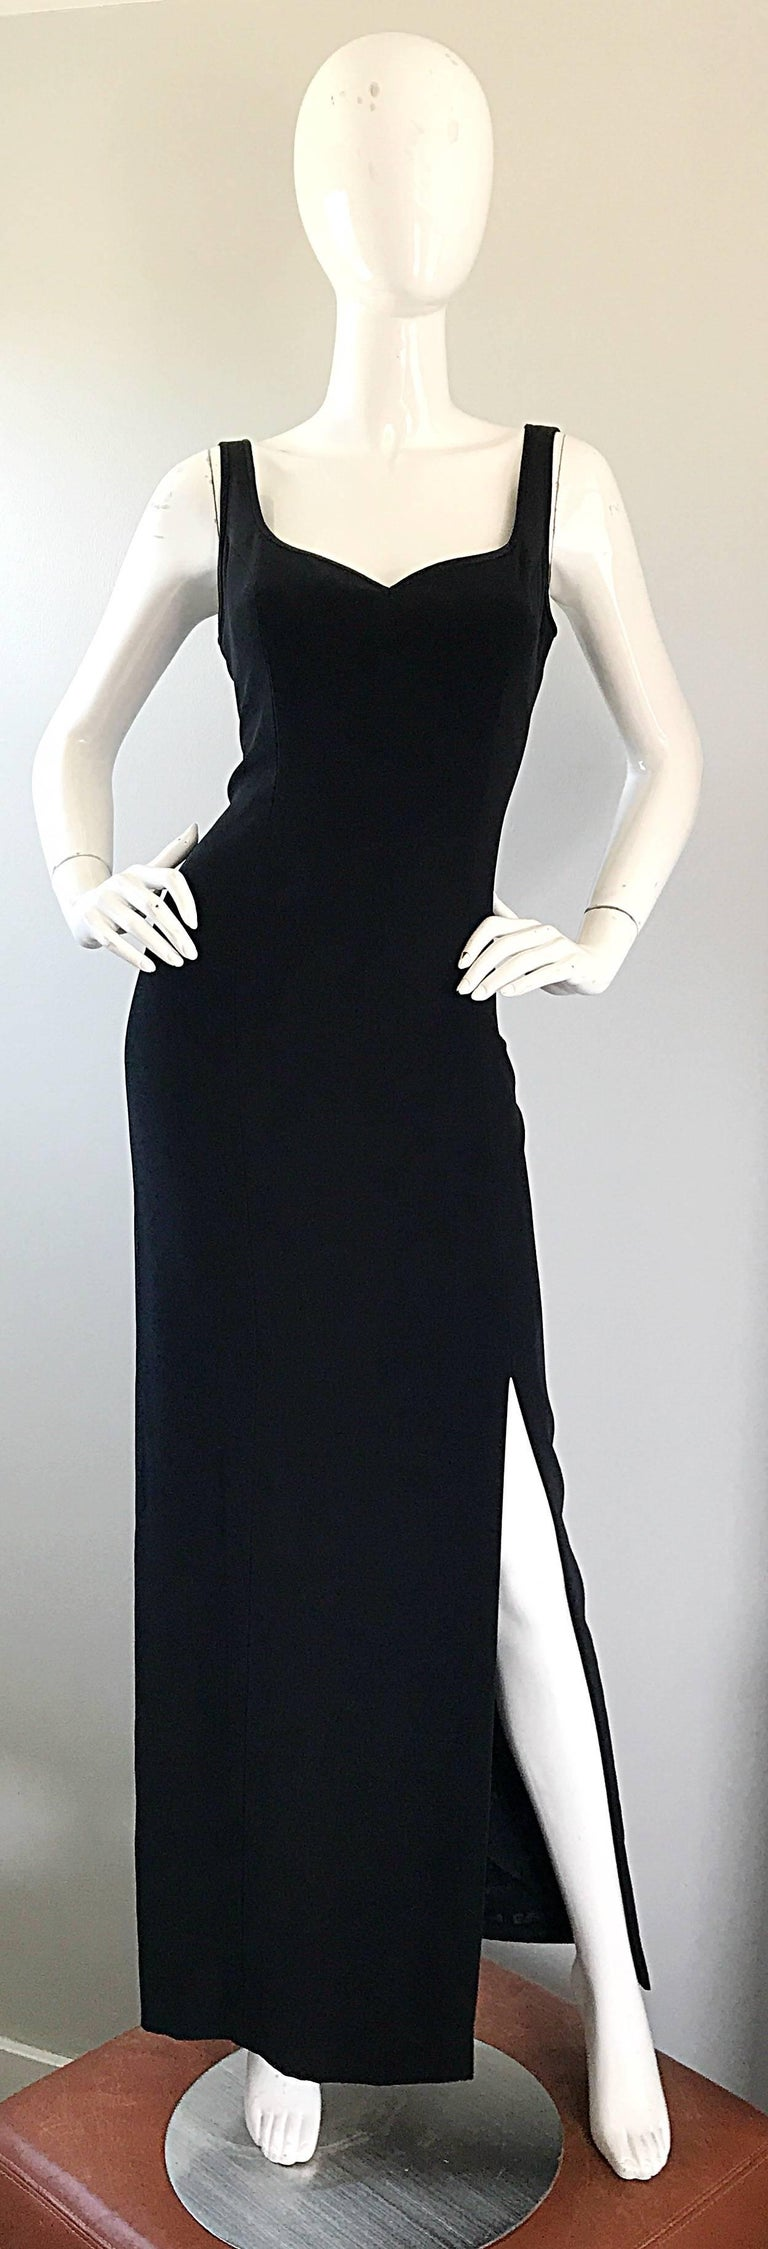 1990s Bob Mackie Size 10 Black Crepe Sexy 90s Vintage High Slit Evening Gown  In Excellent Condition For Sale In Chicago, IL